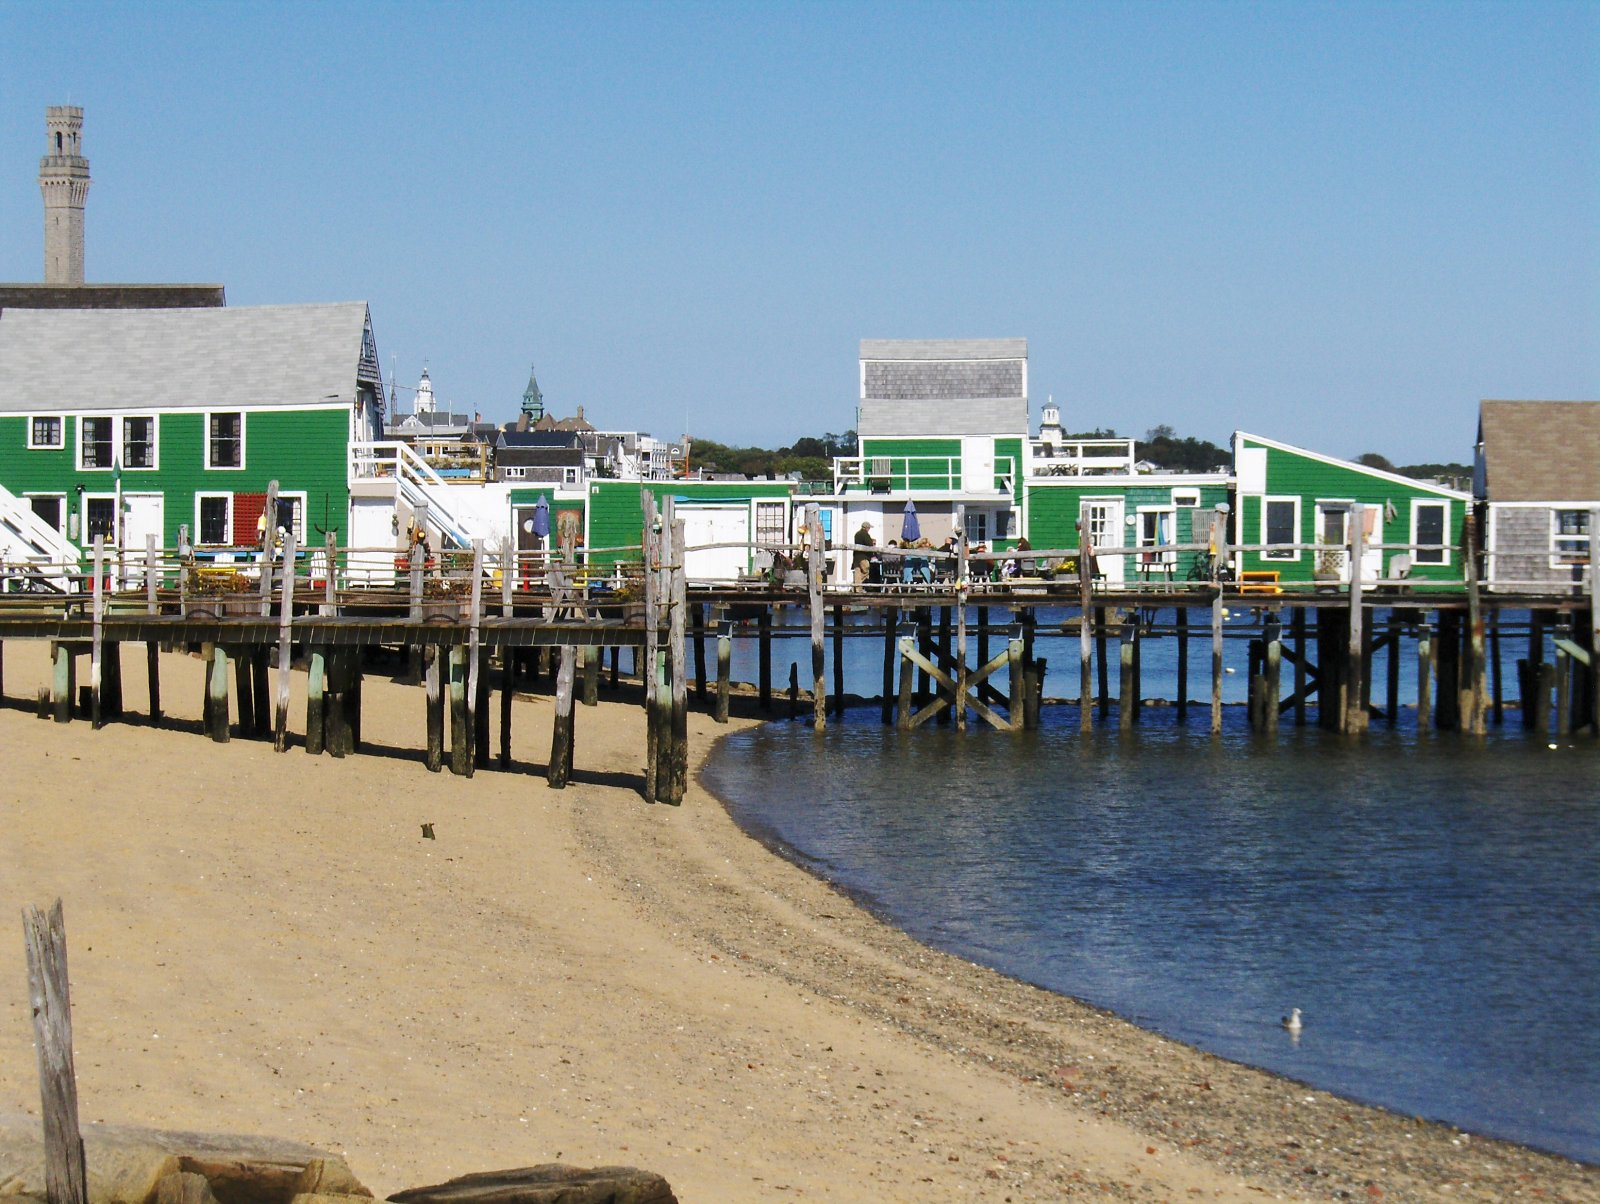 Click image for larger version  Name:PTown 086.jpg Views:86 Size:363.5 KB ID:91426